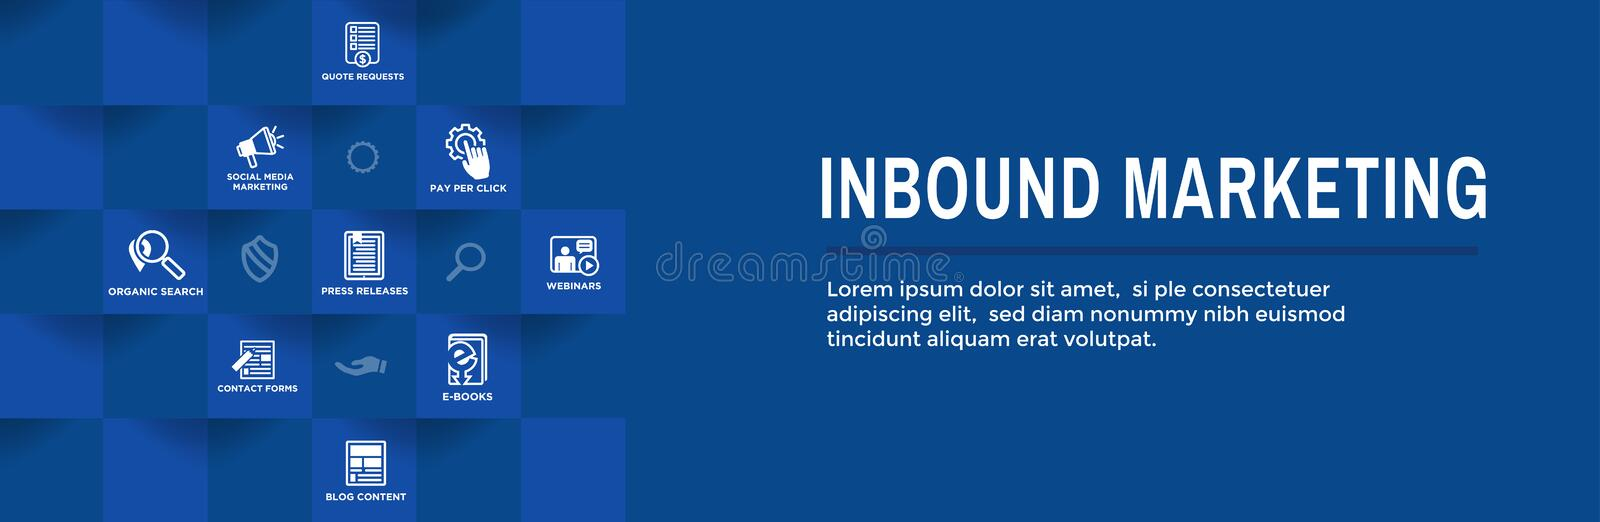 Digital Inbound Marketing Web Banner with Vector Icons with CTA, Growth, SEO, etc stock illustration